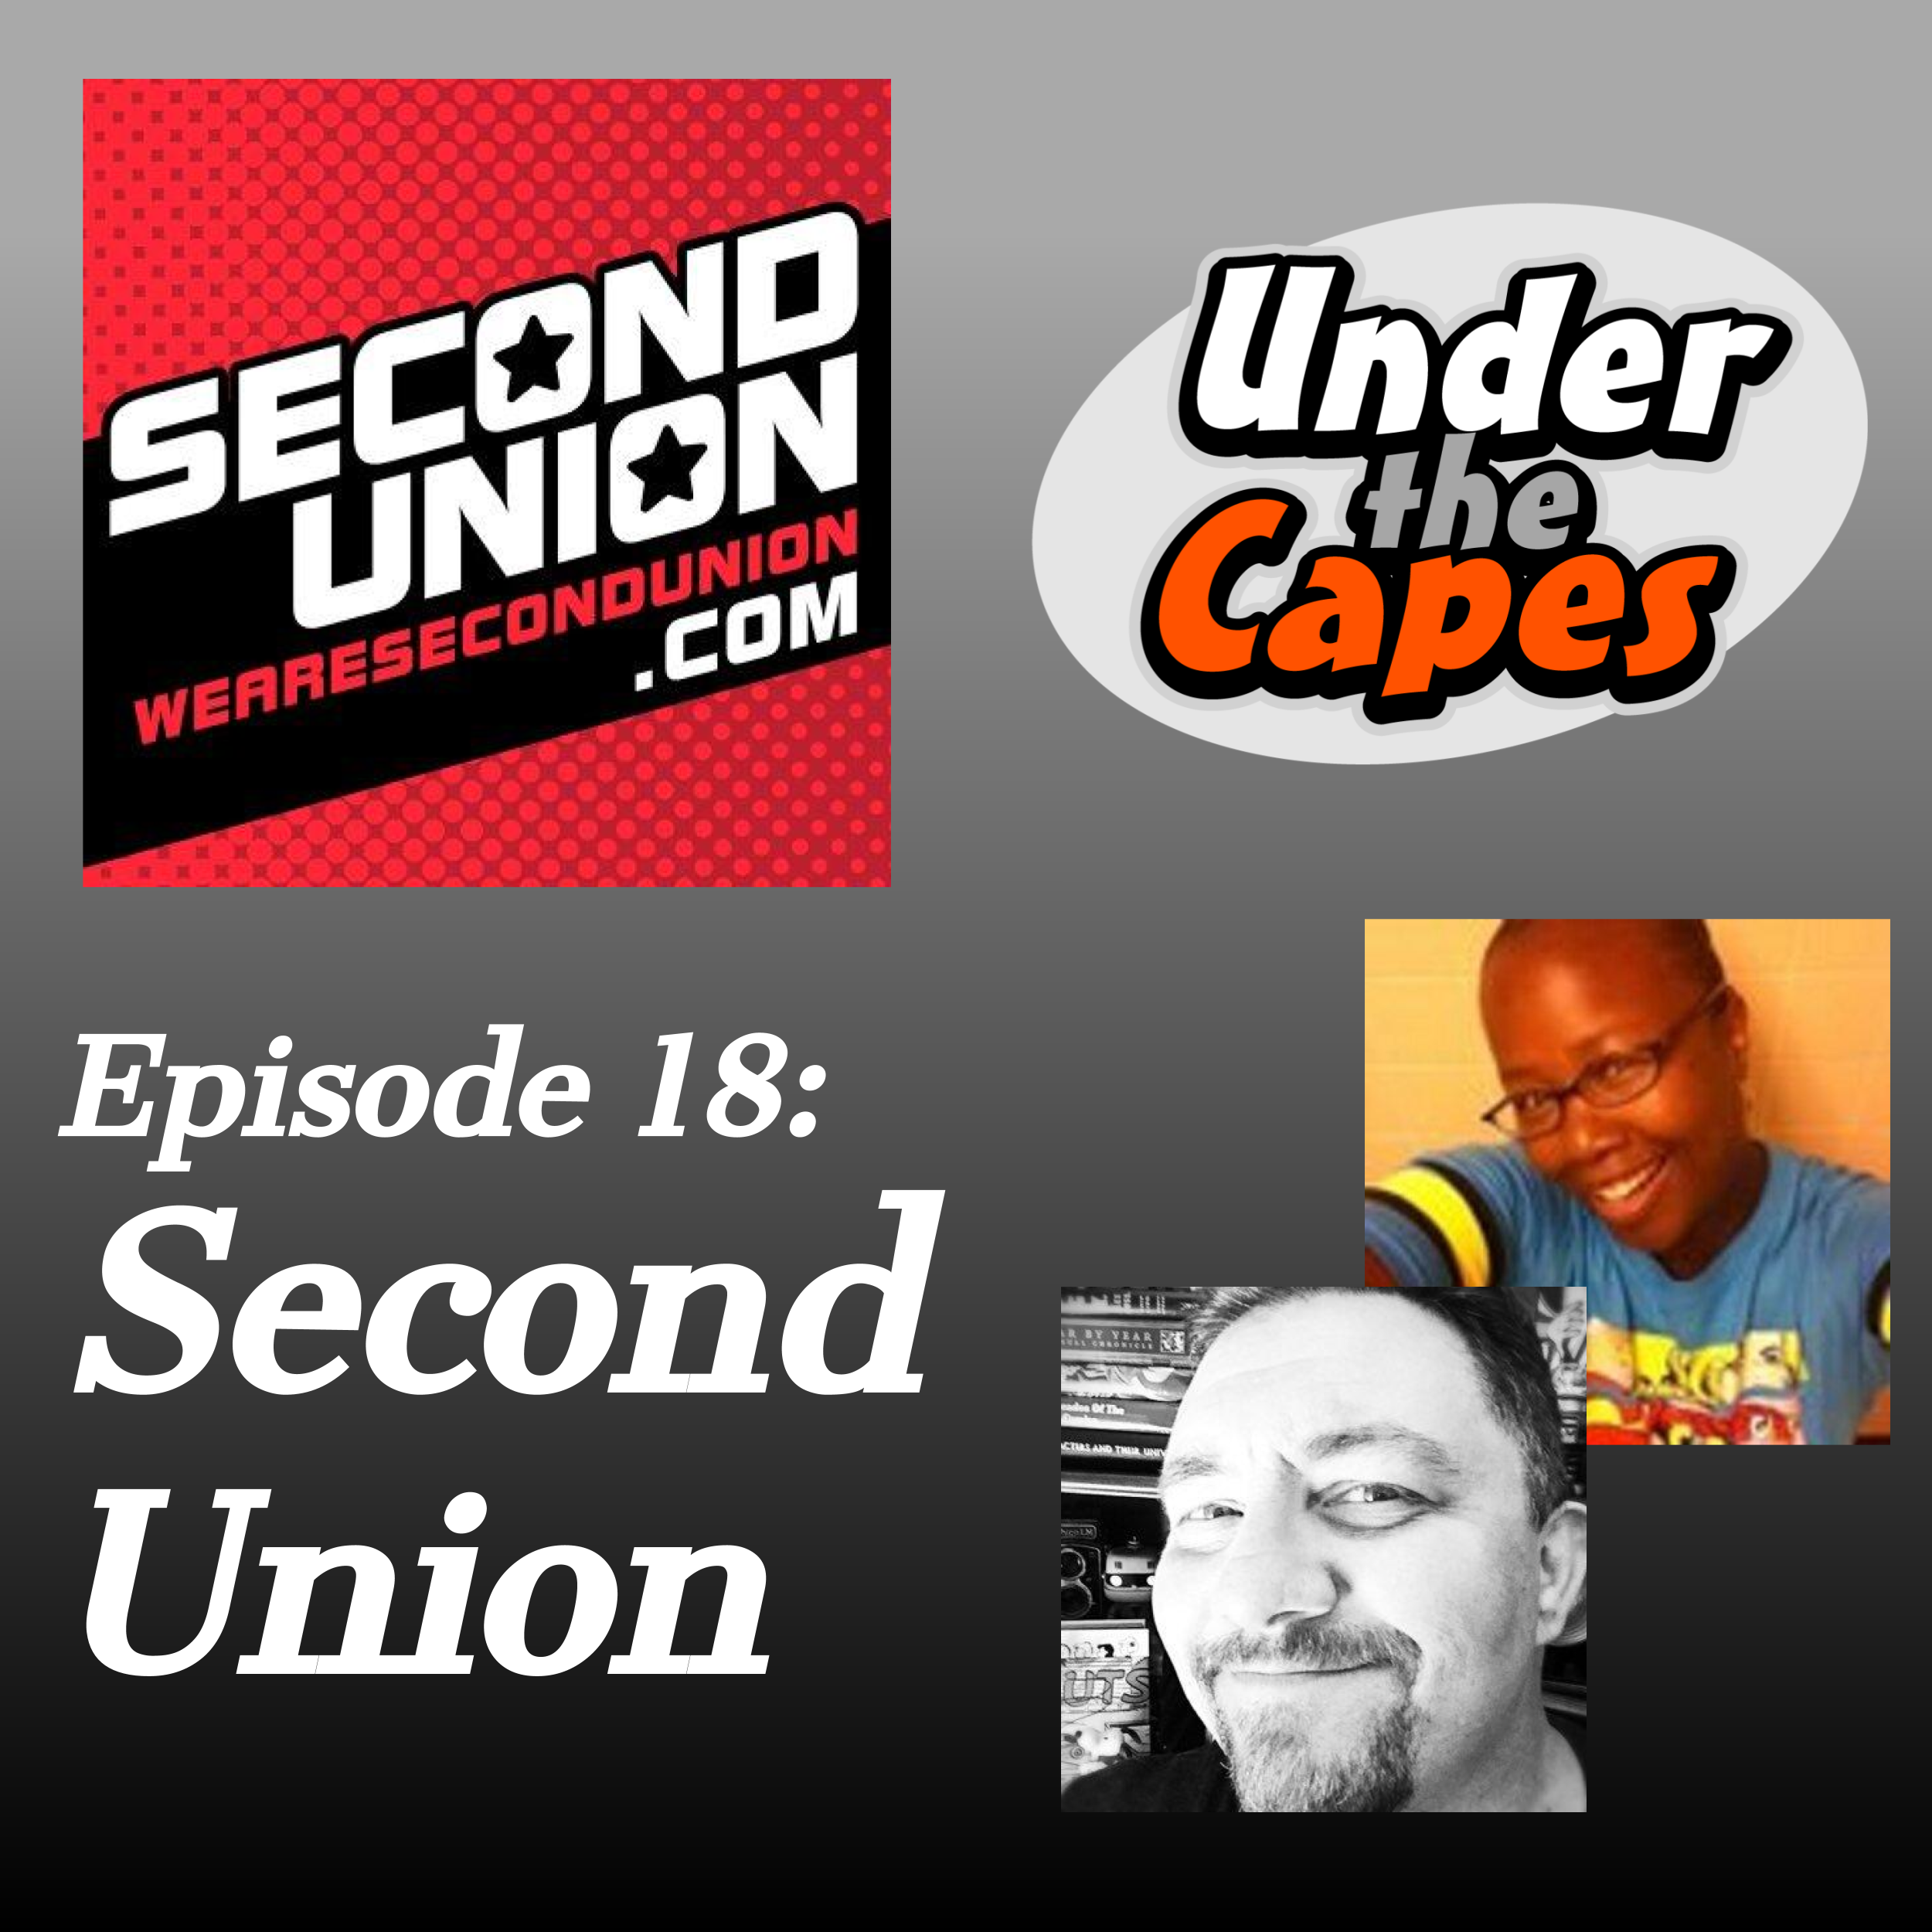 Episode 18: Second Union